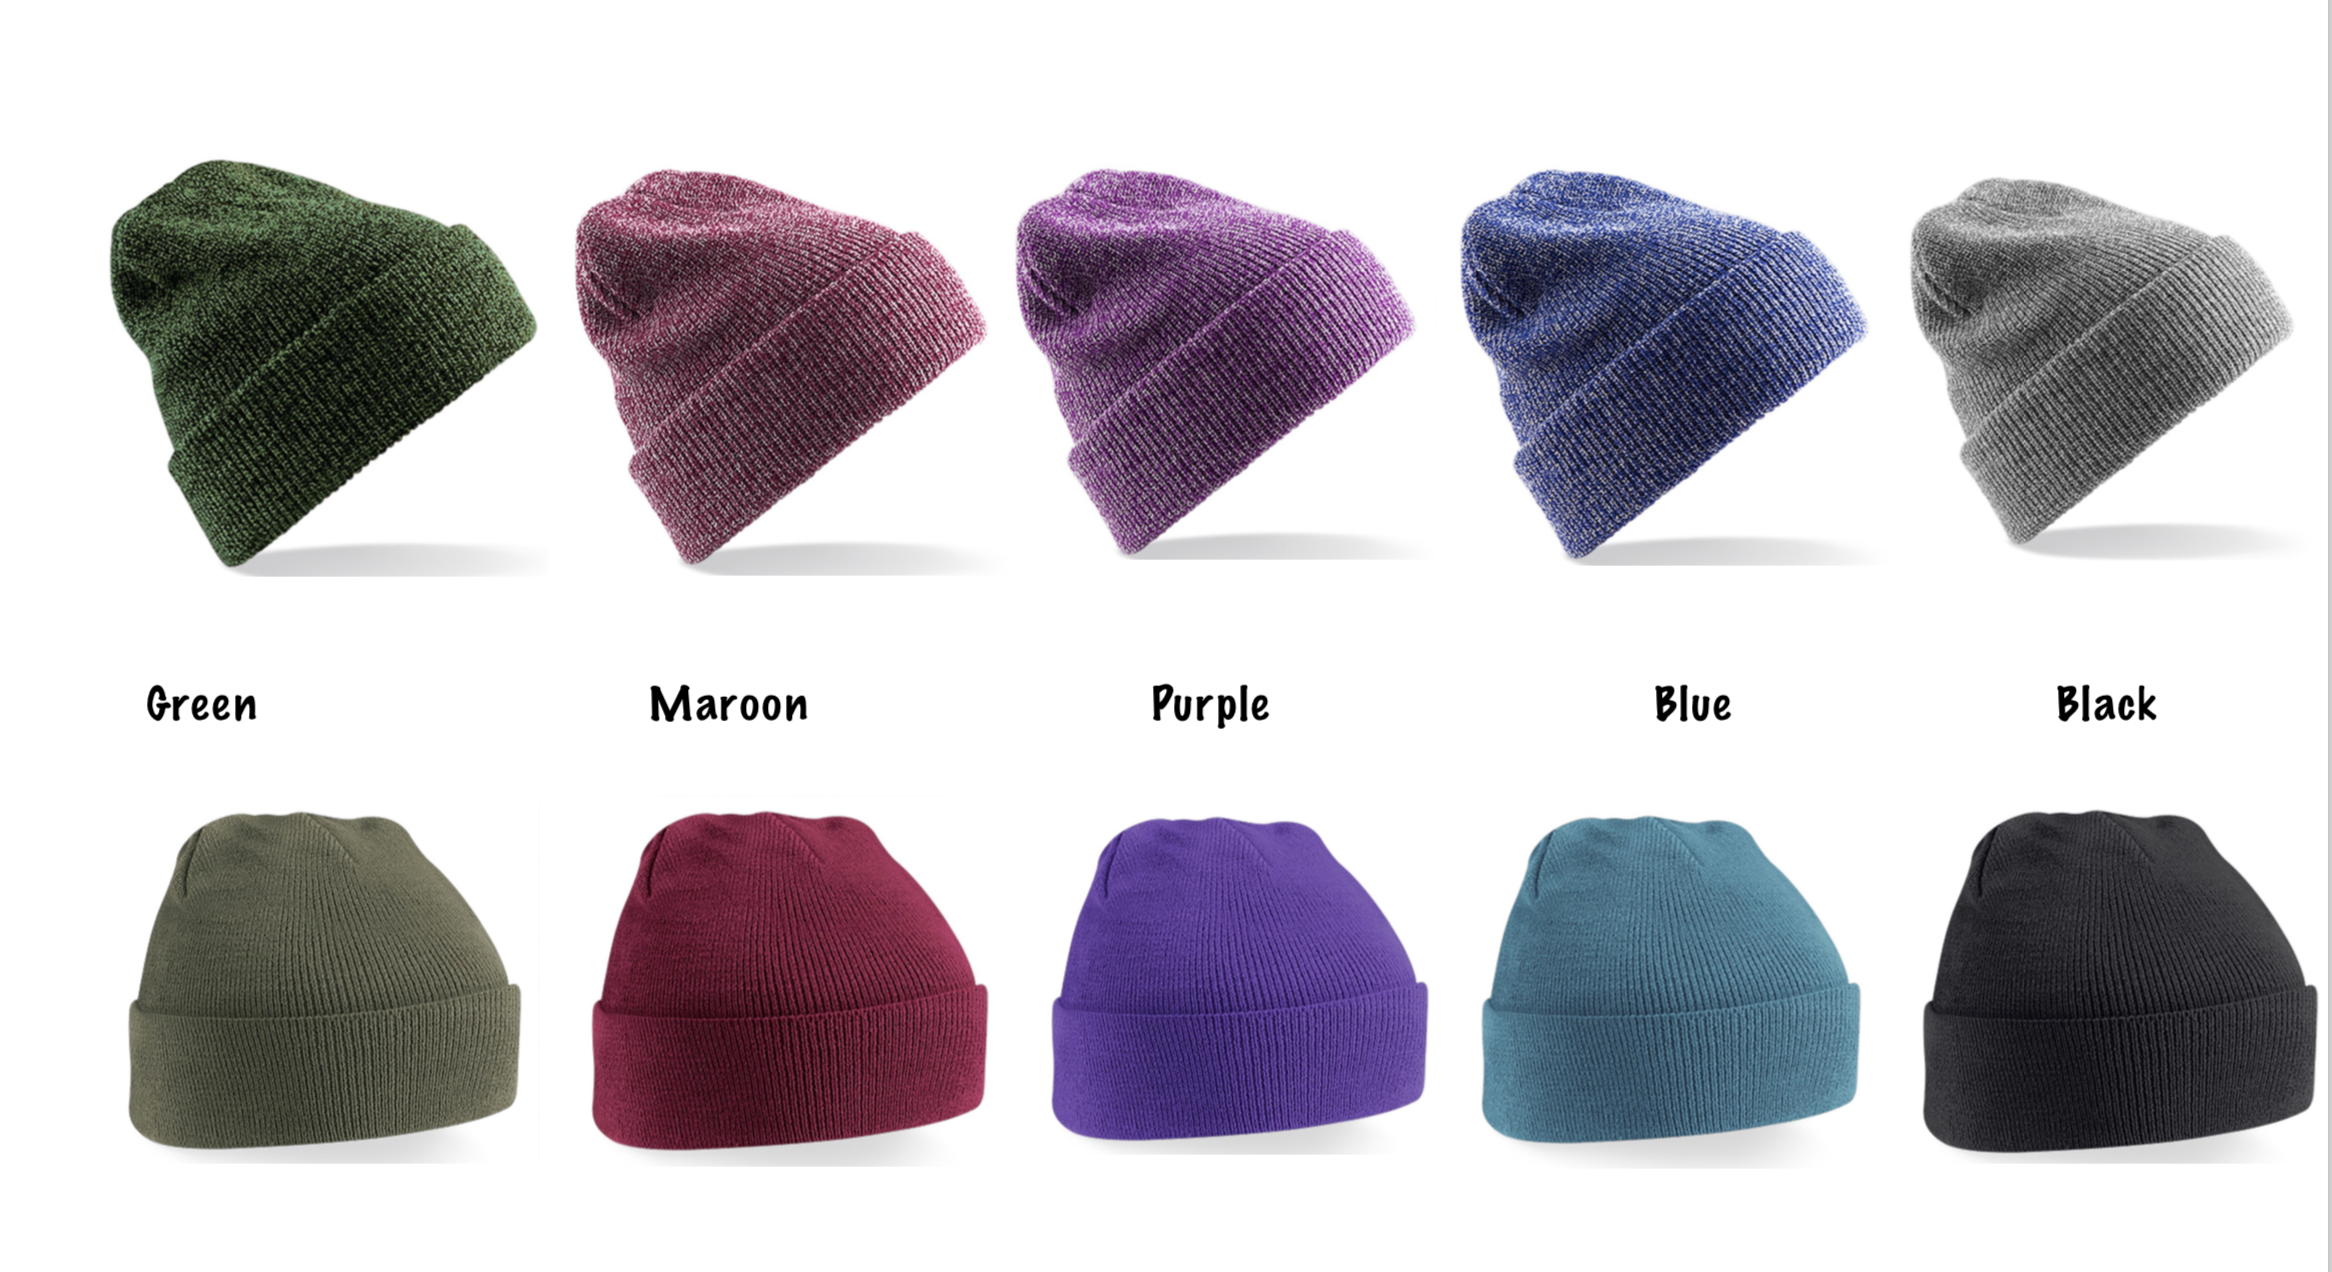 wholesale customised beanies for clubs and universities